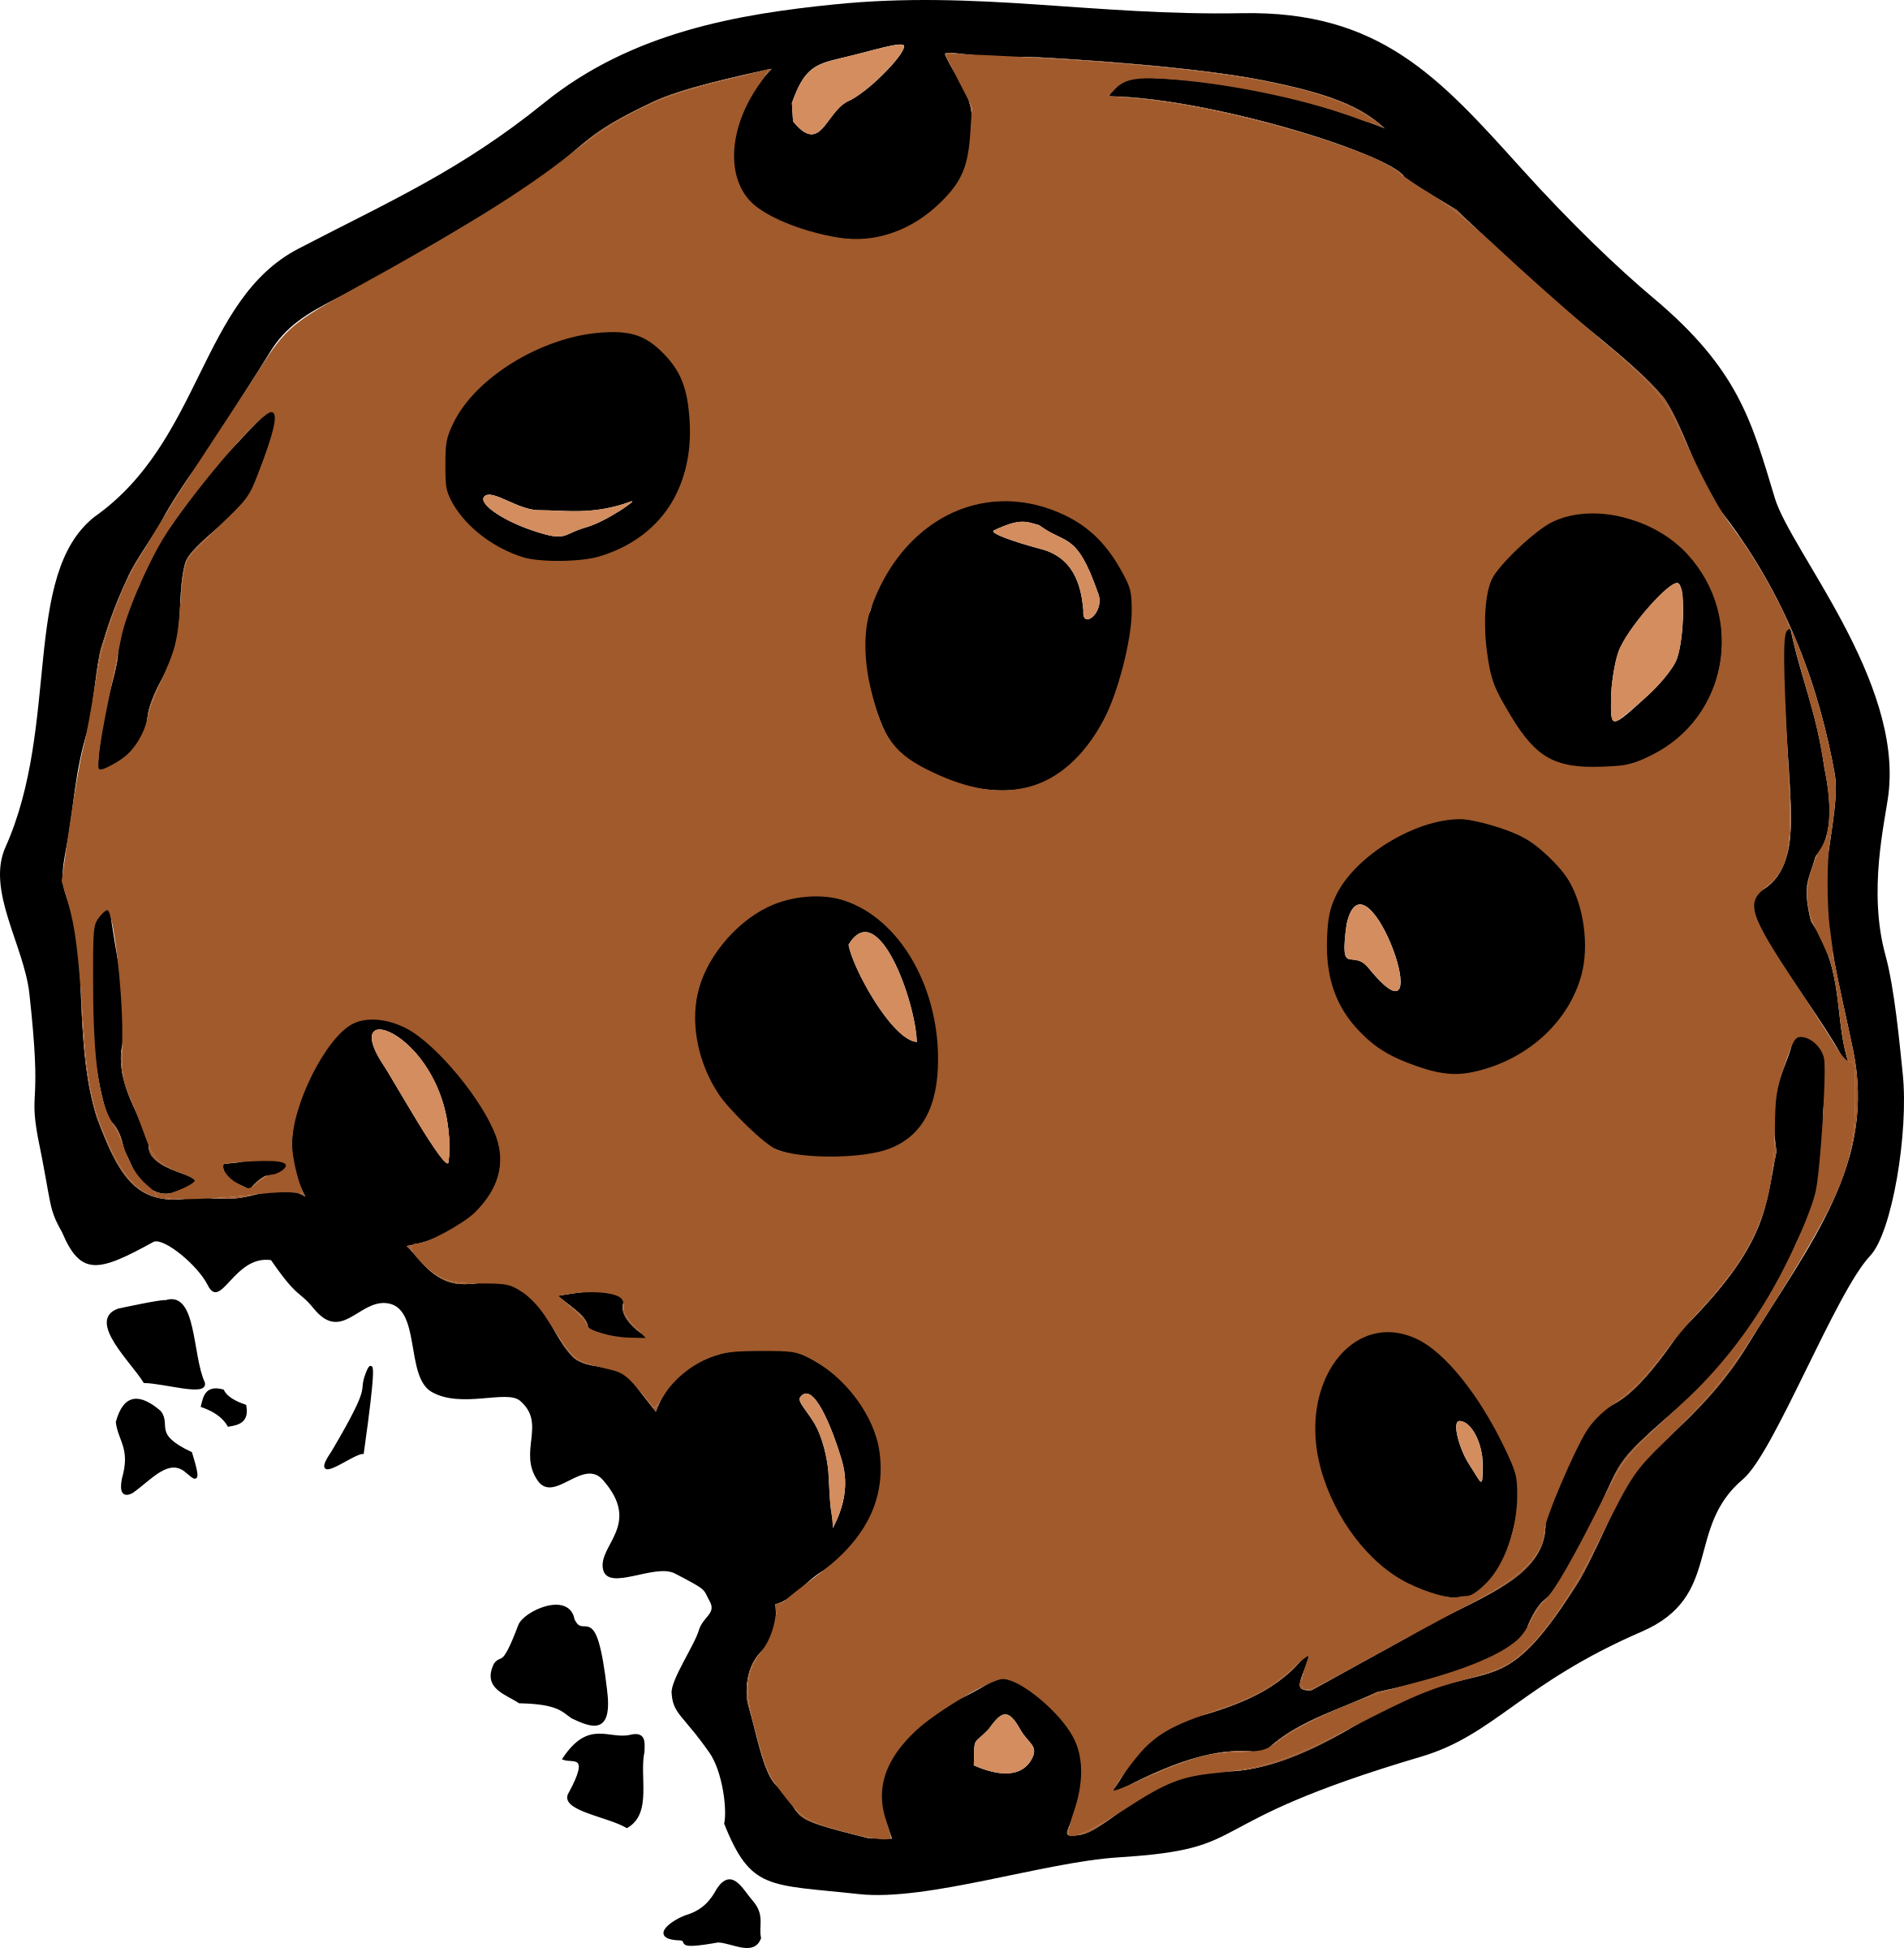 Big image png. Cookie clipart